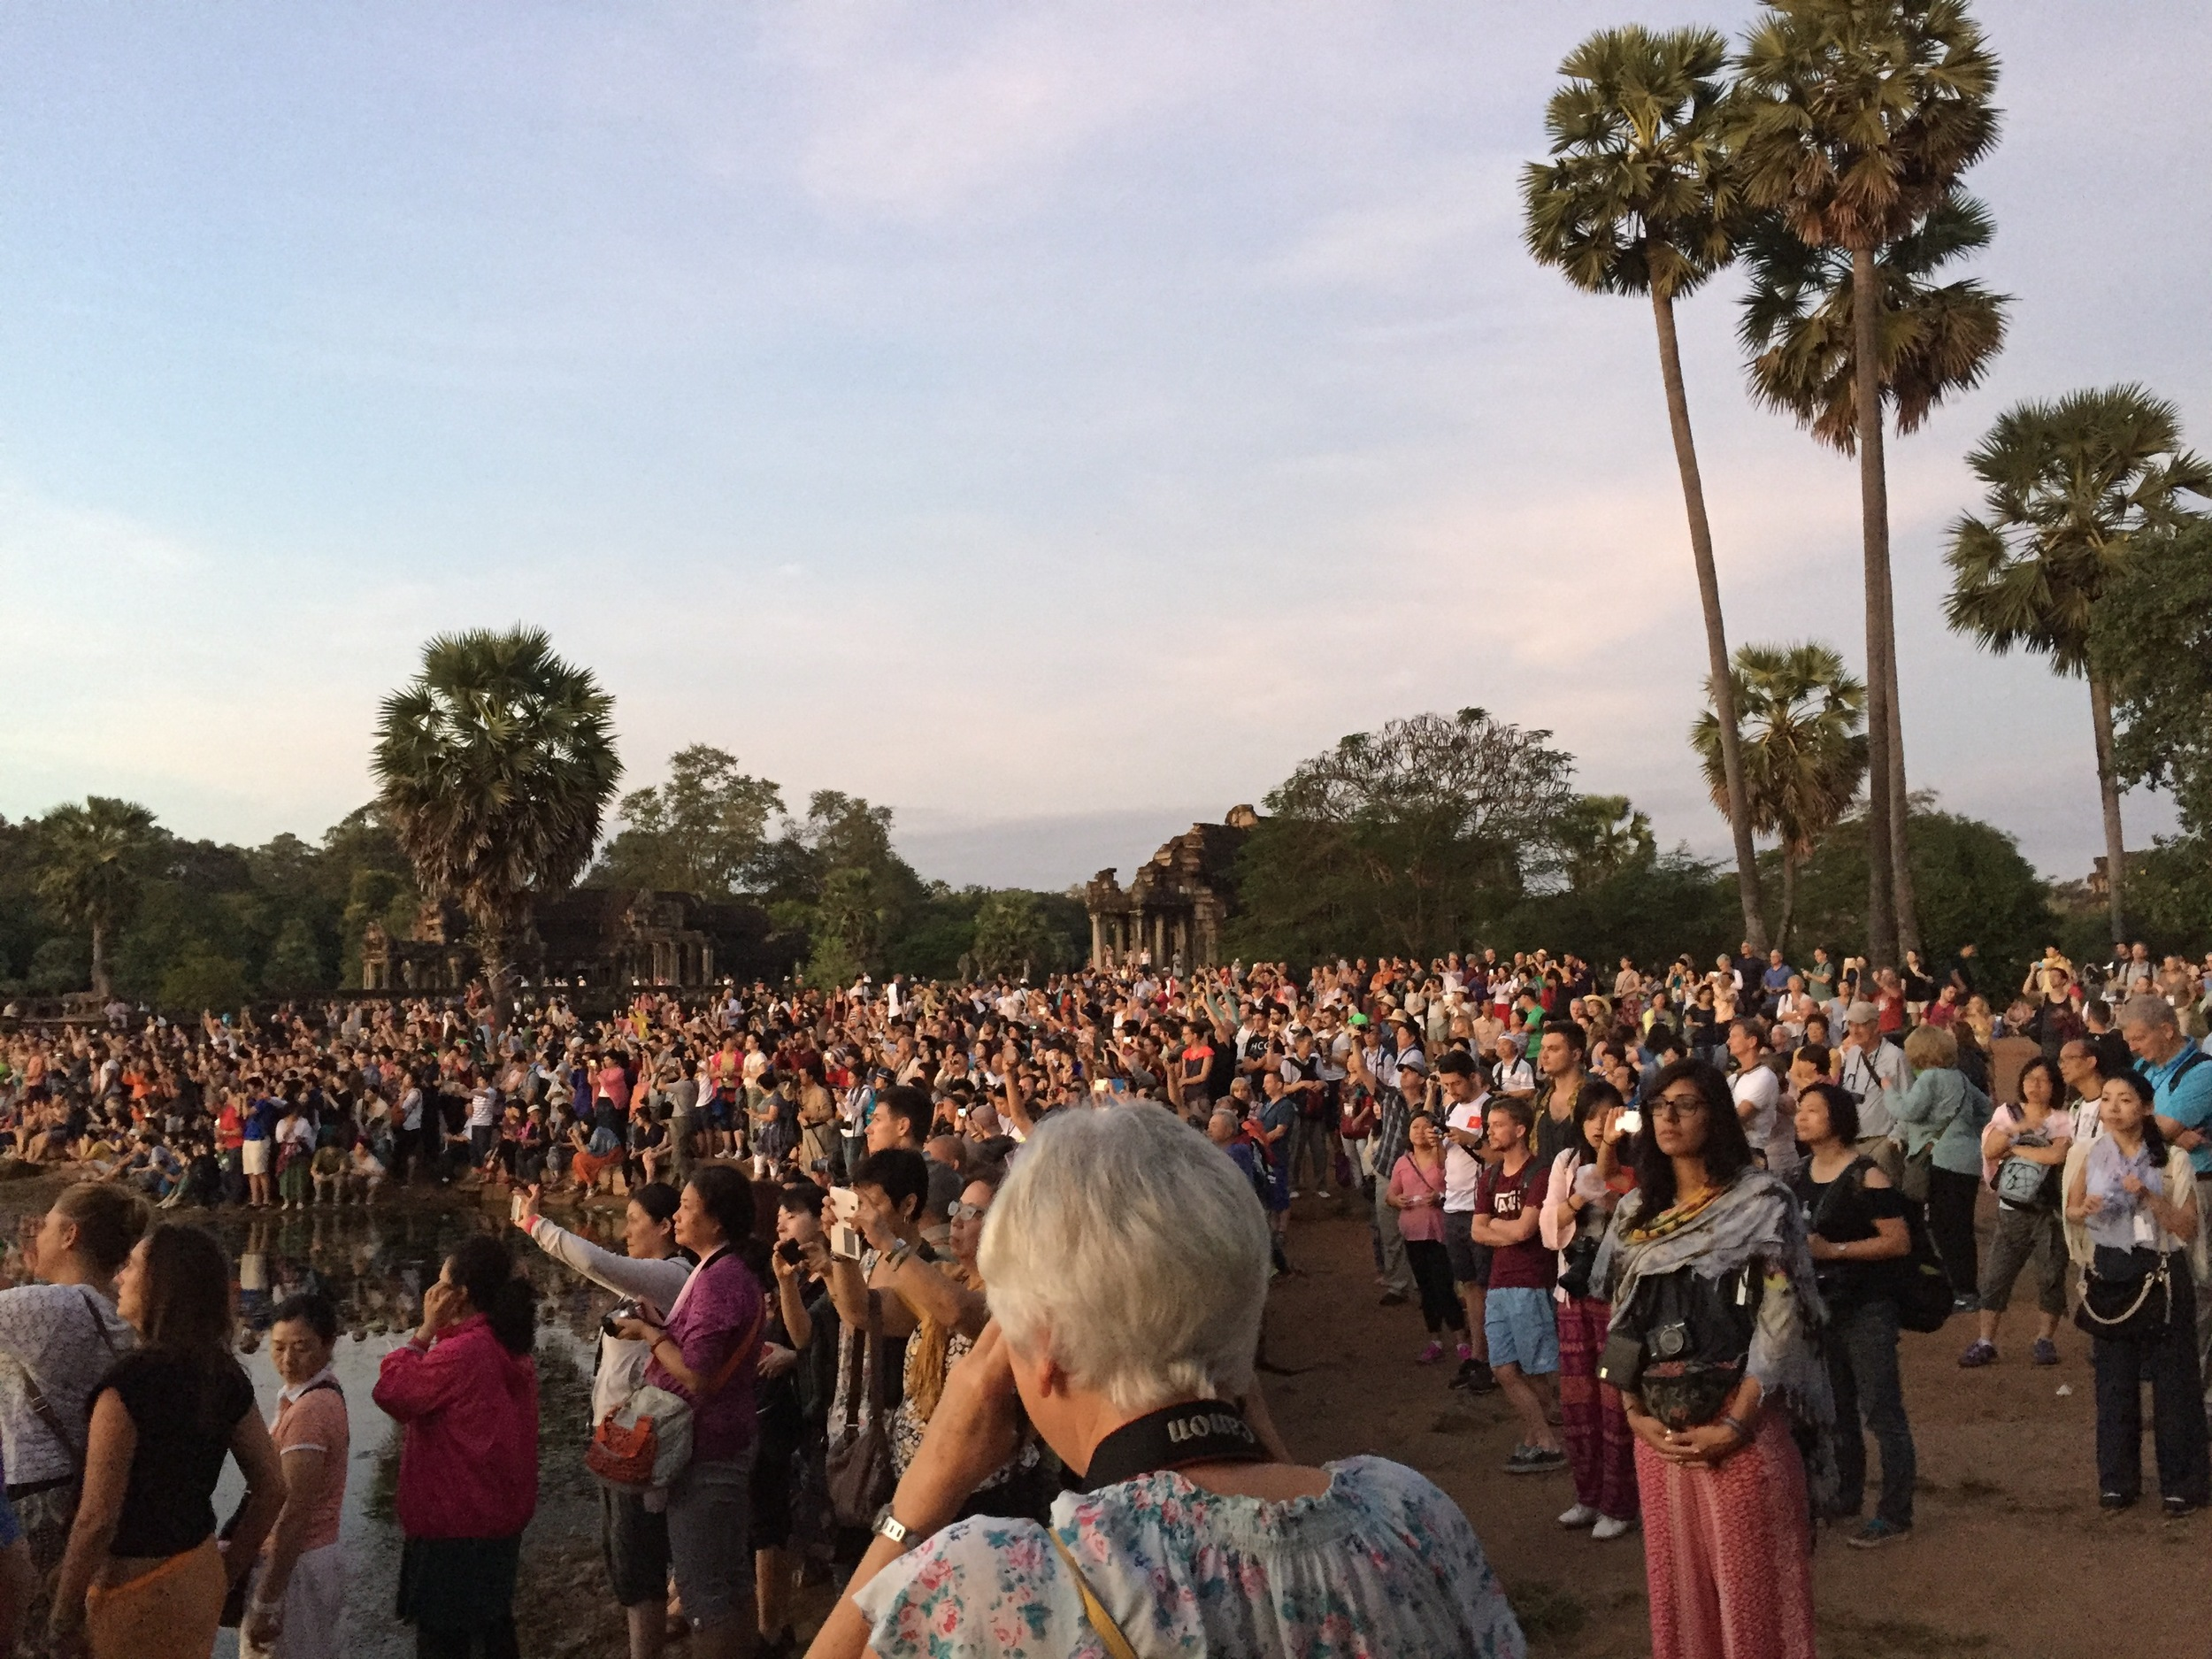 The crowds at Angkor Wat just before sunrise.